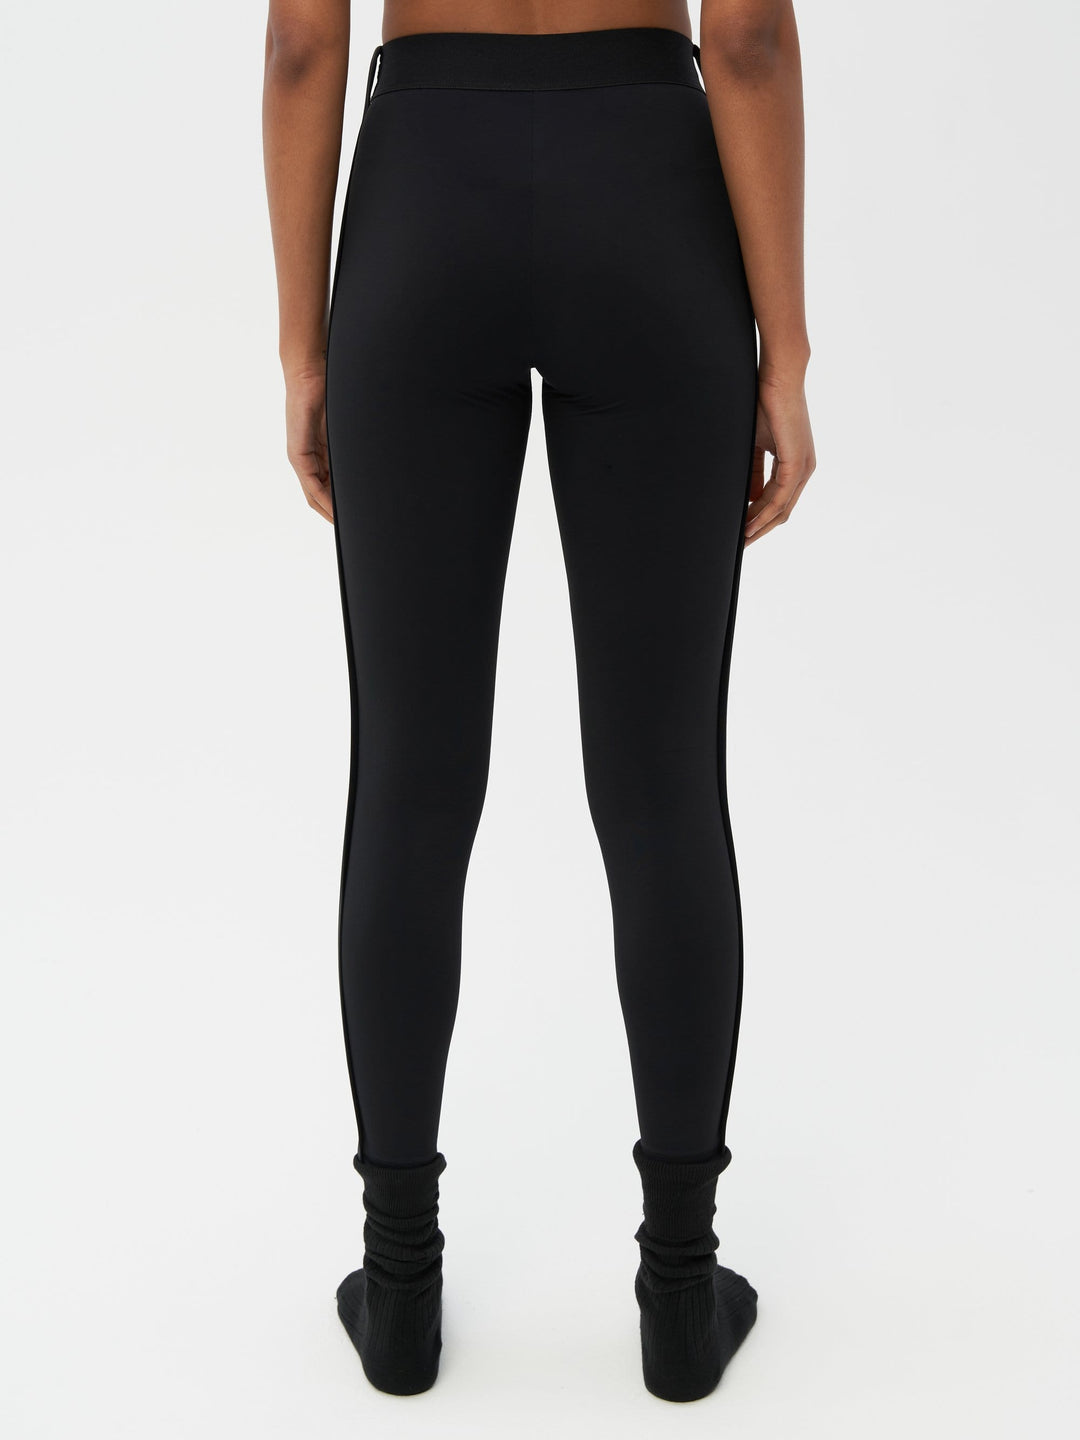 Binding Tape Legging Black